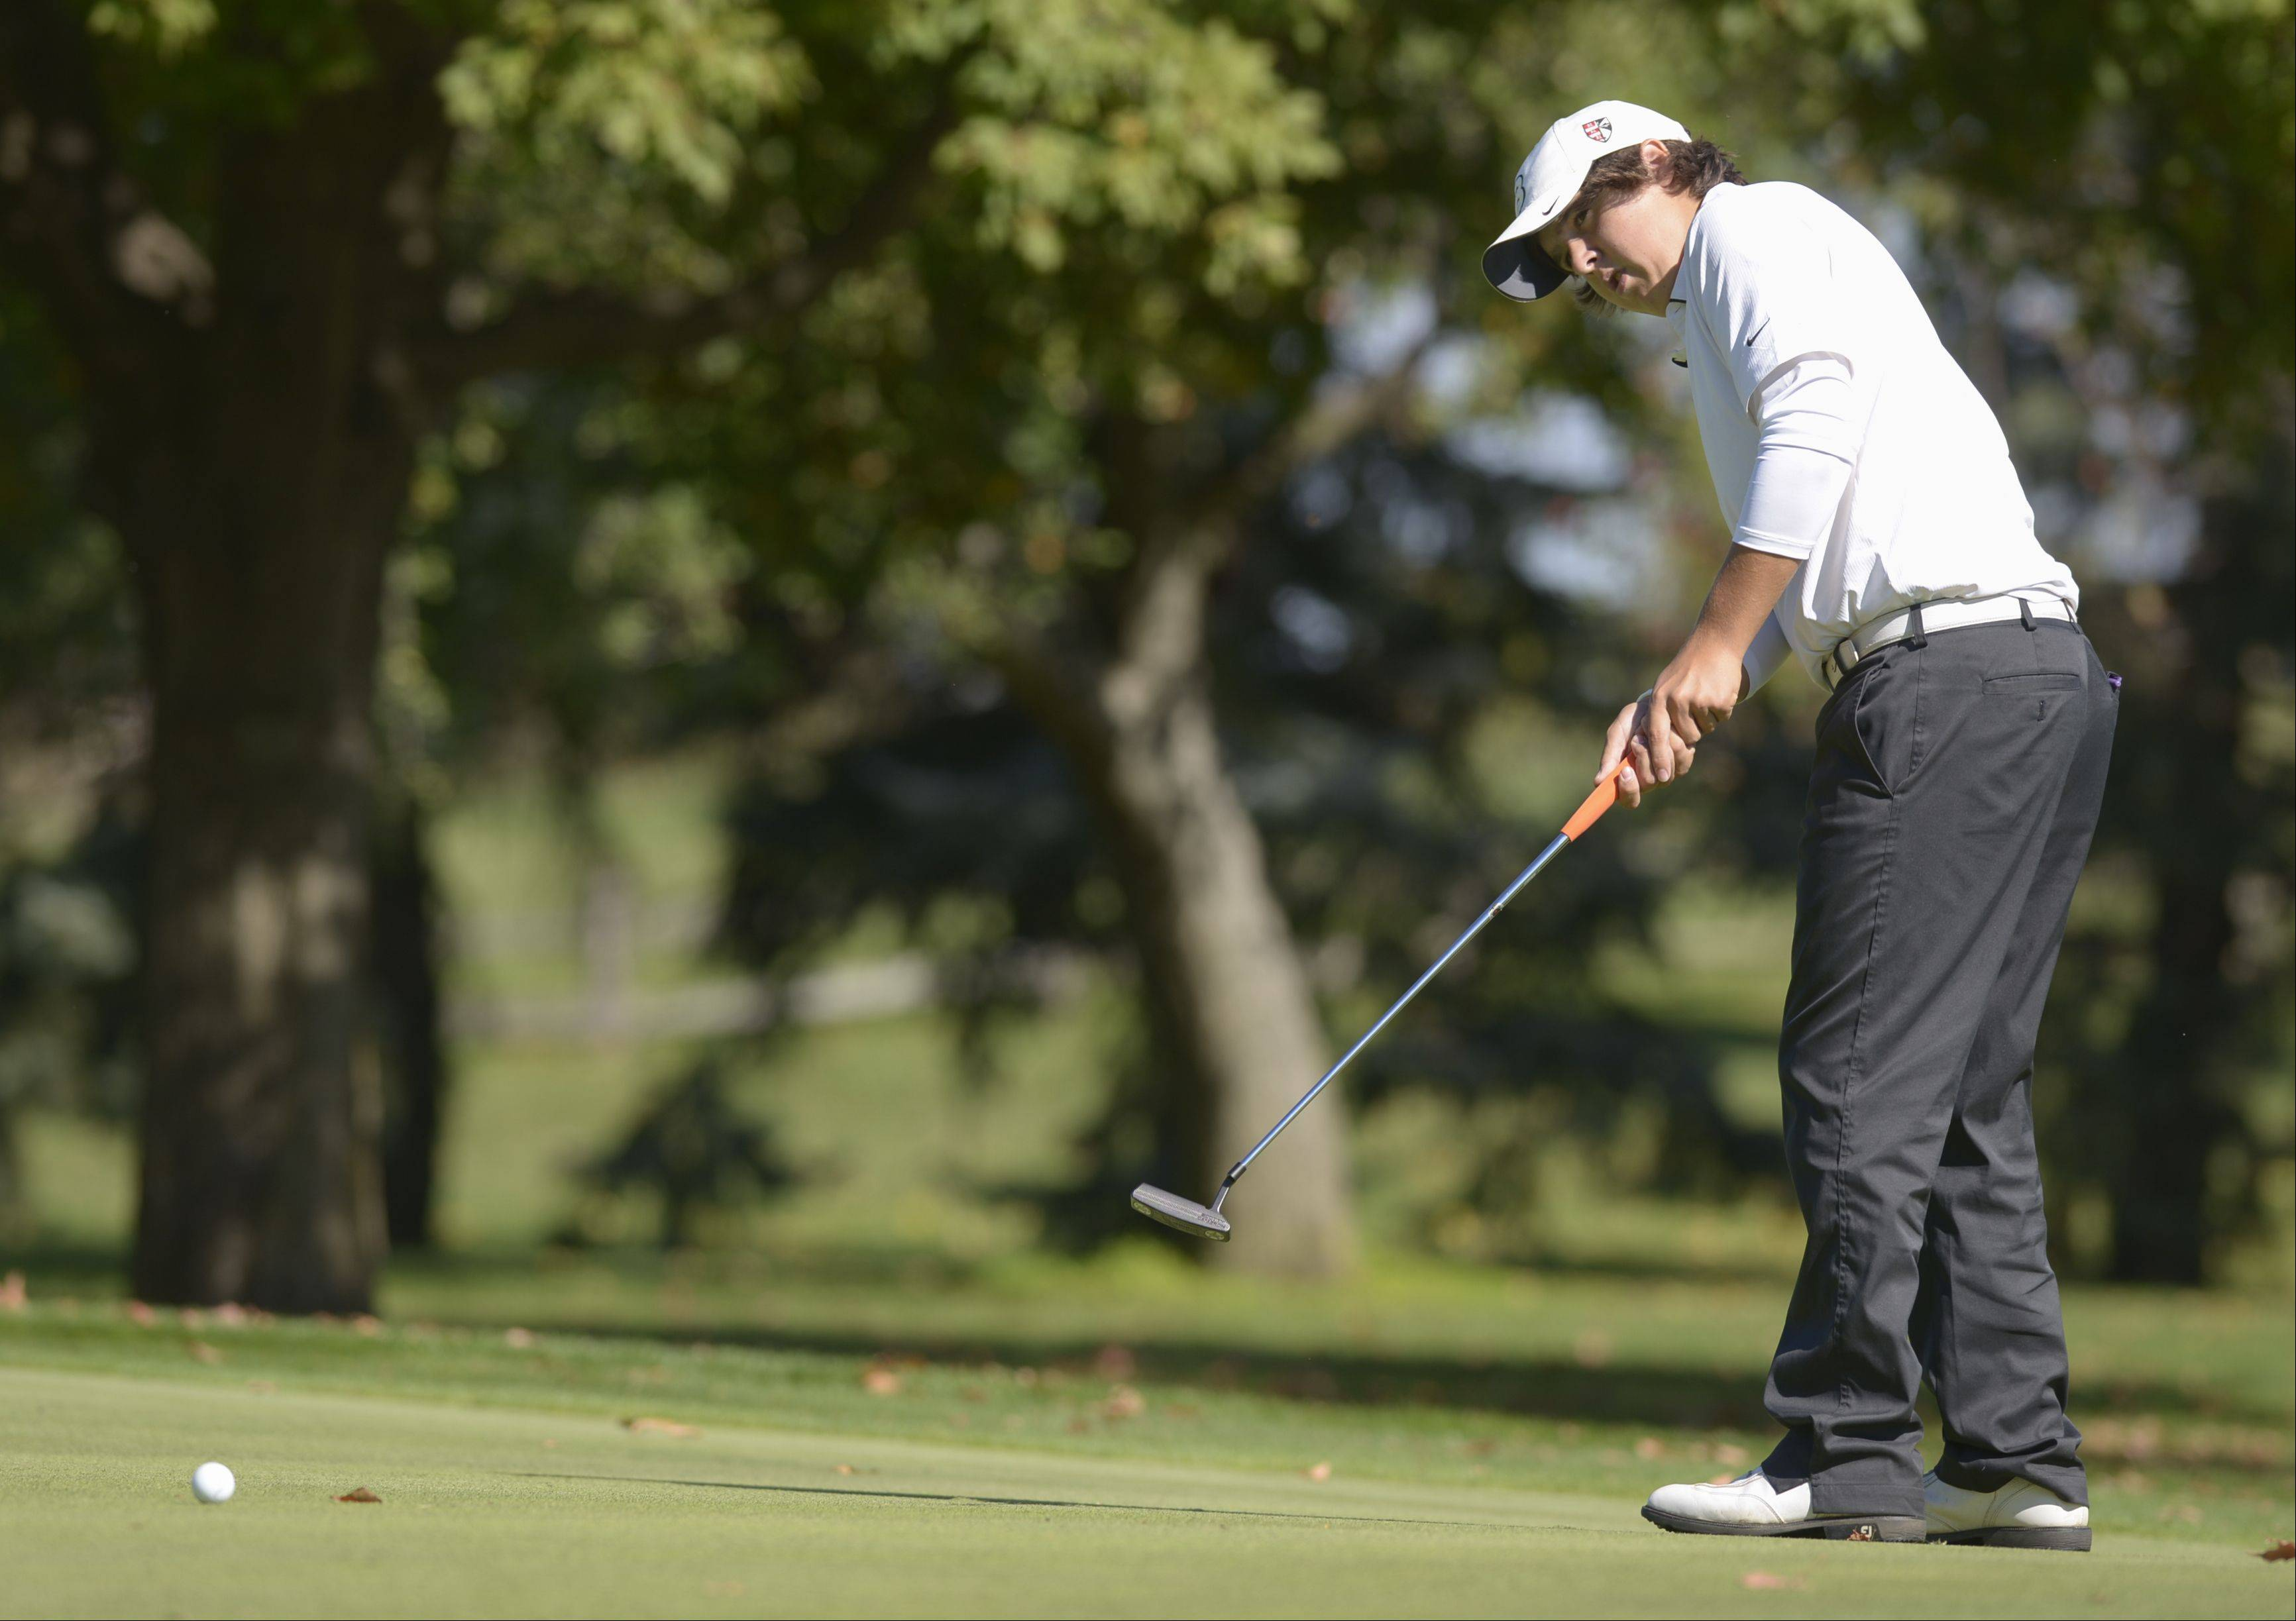 Mark Black/mblack@dailyherald.comWill Denman of Wheaton Warrenville South putts during the Class 3A Naperville Central sectional boys golf tournament, Monday at Springbrook Golf Course in Naperville.